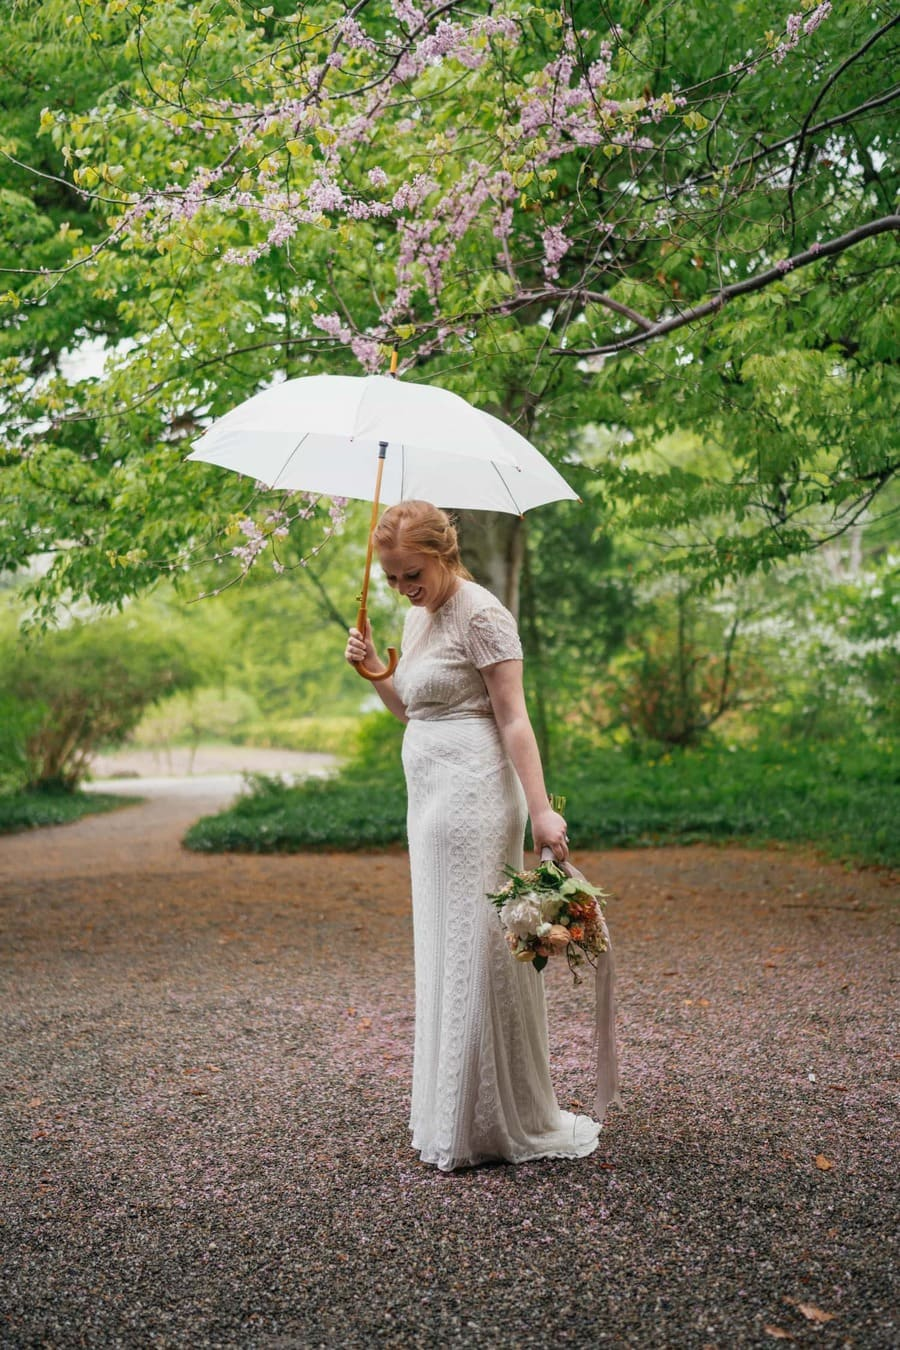 Bride in wedding dress smiles and looks at ground, holding bouquet and white umbrella.